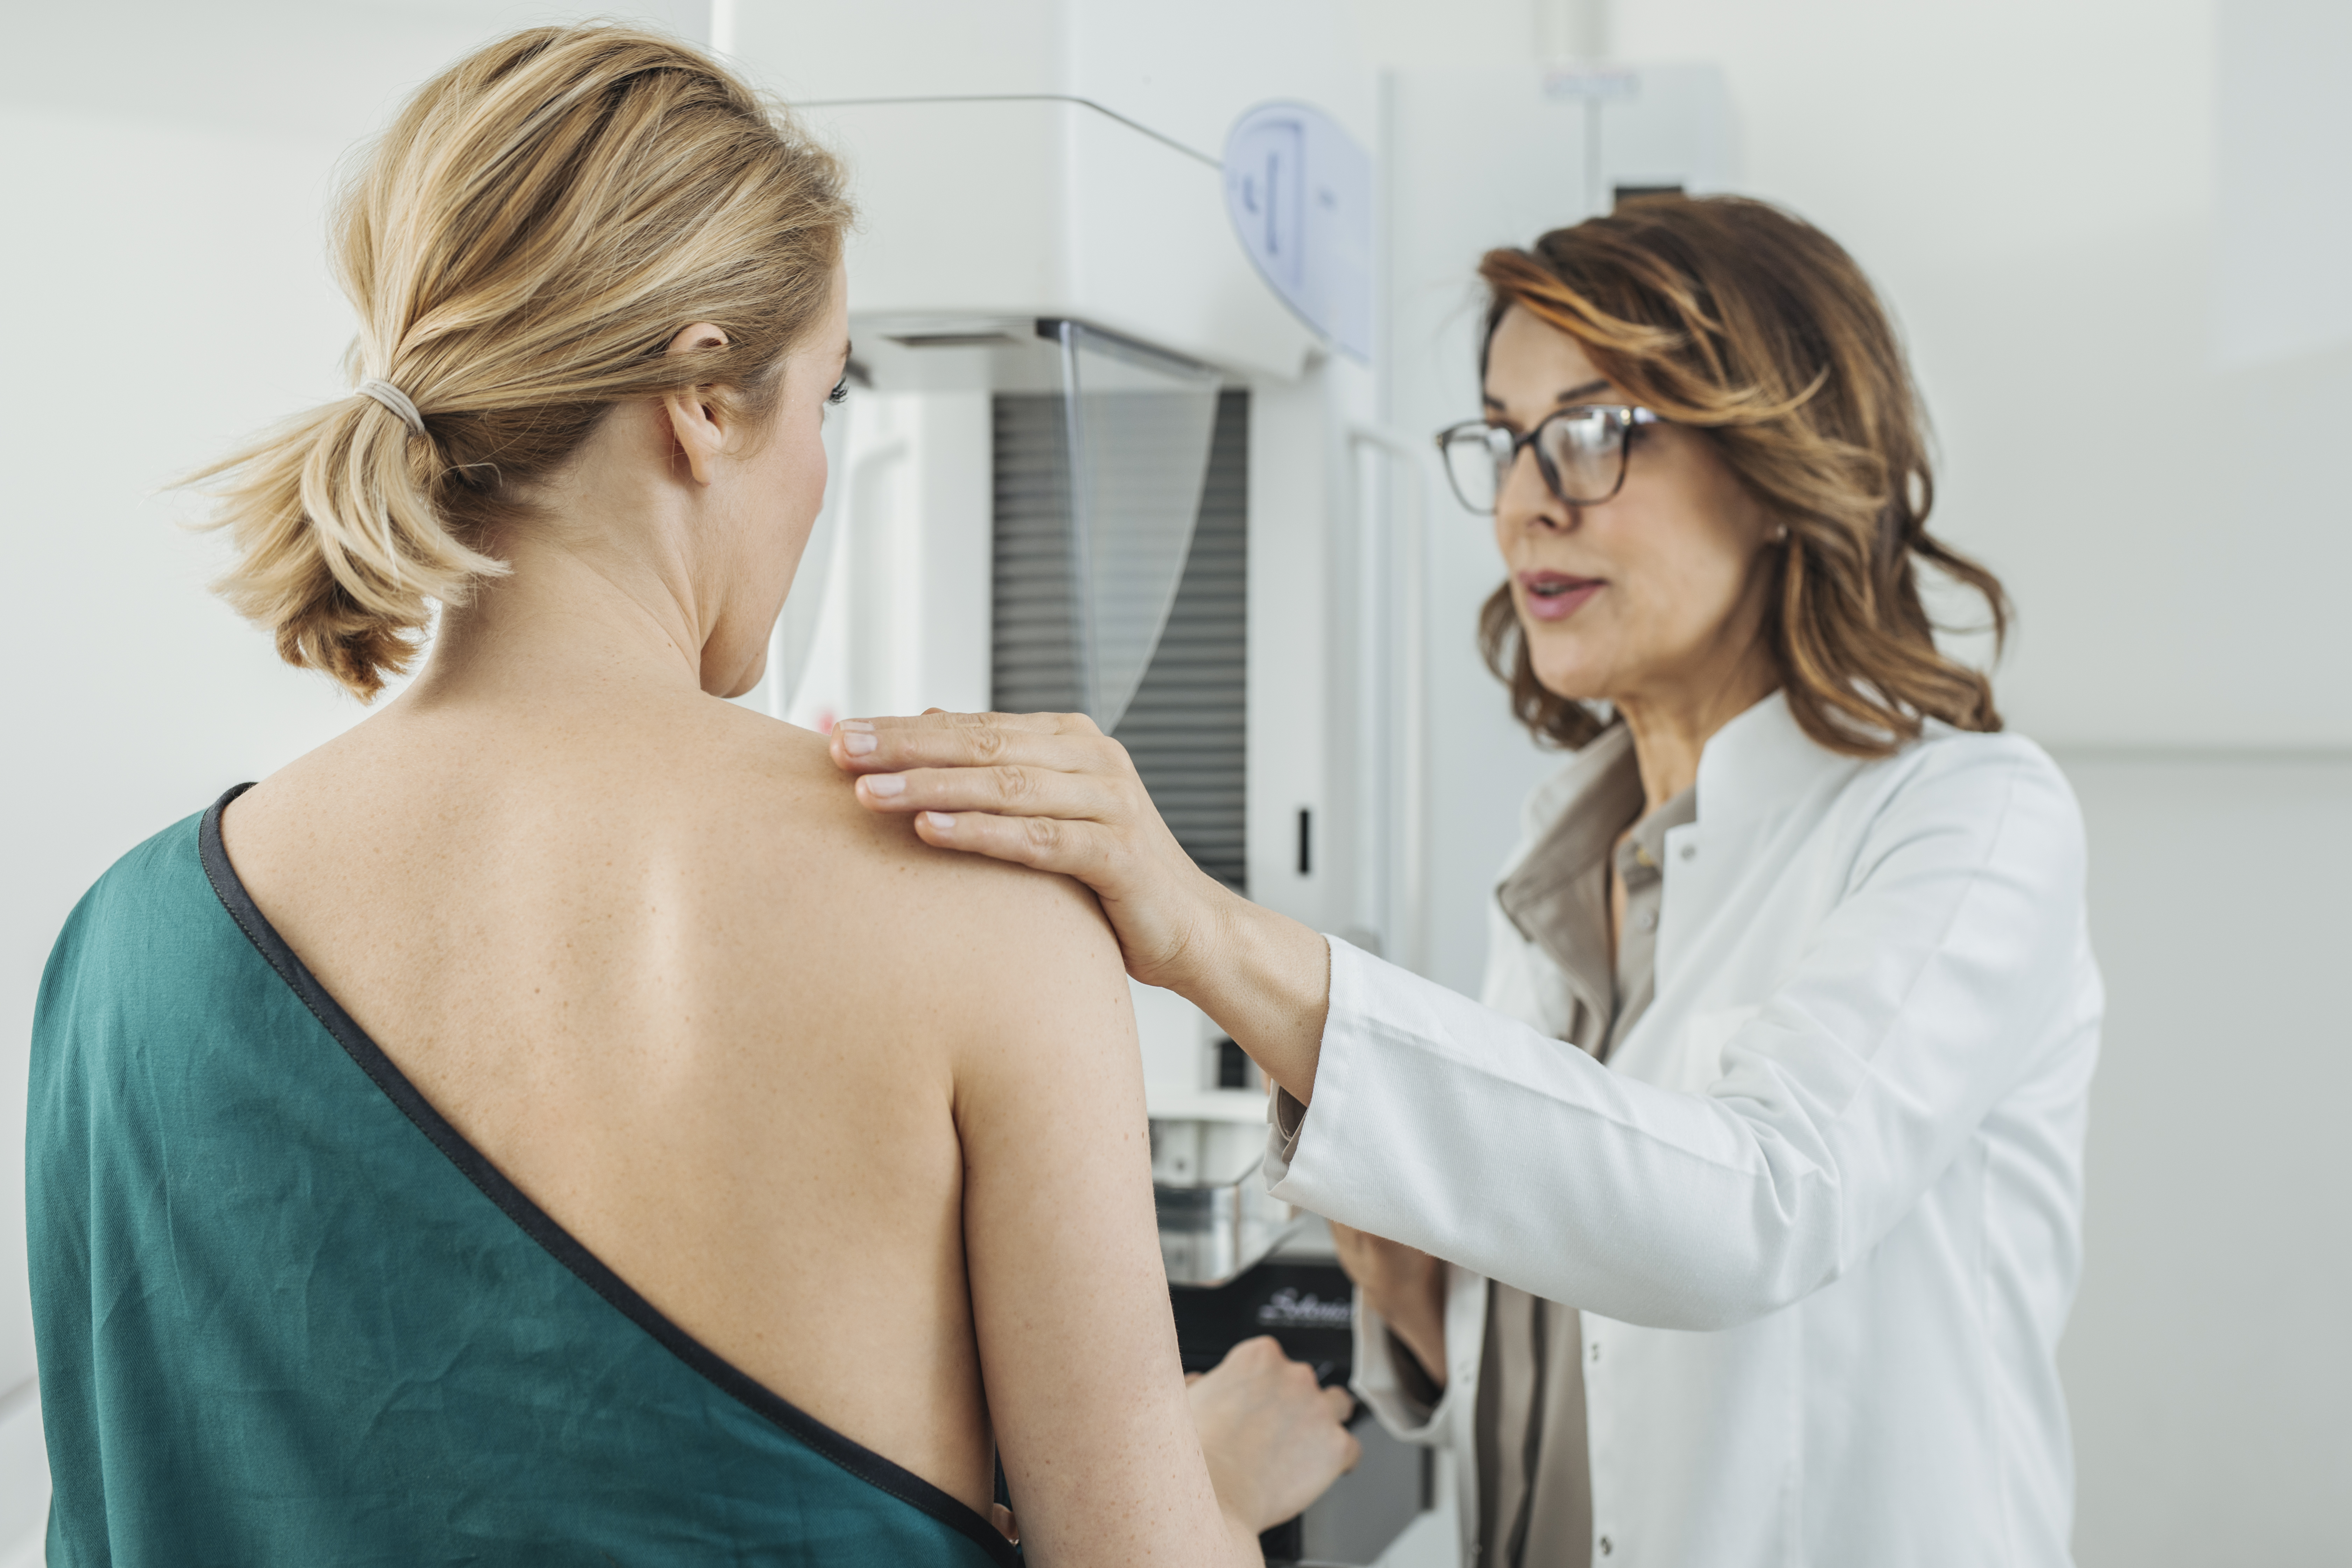 Women should get mammograms in their 40's